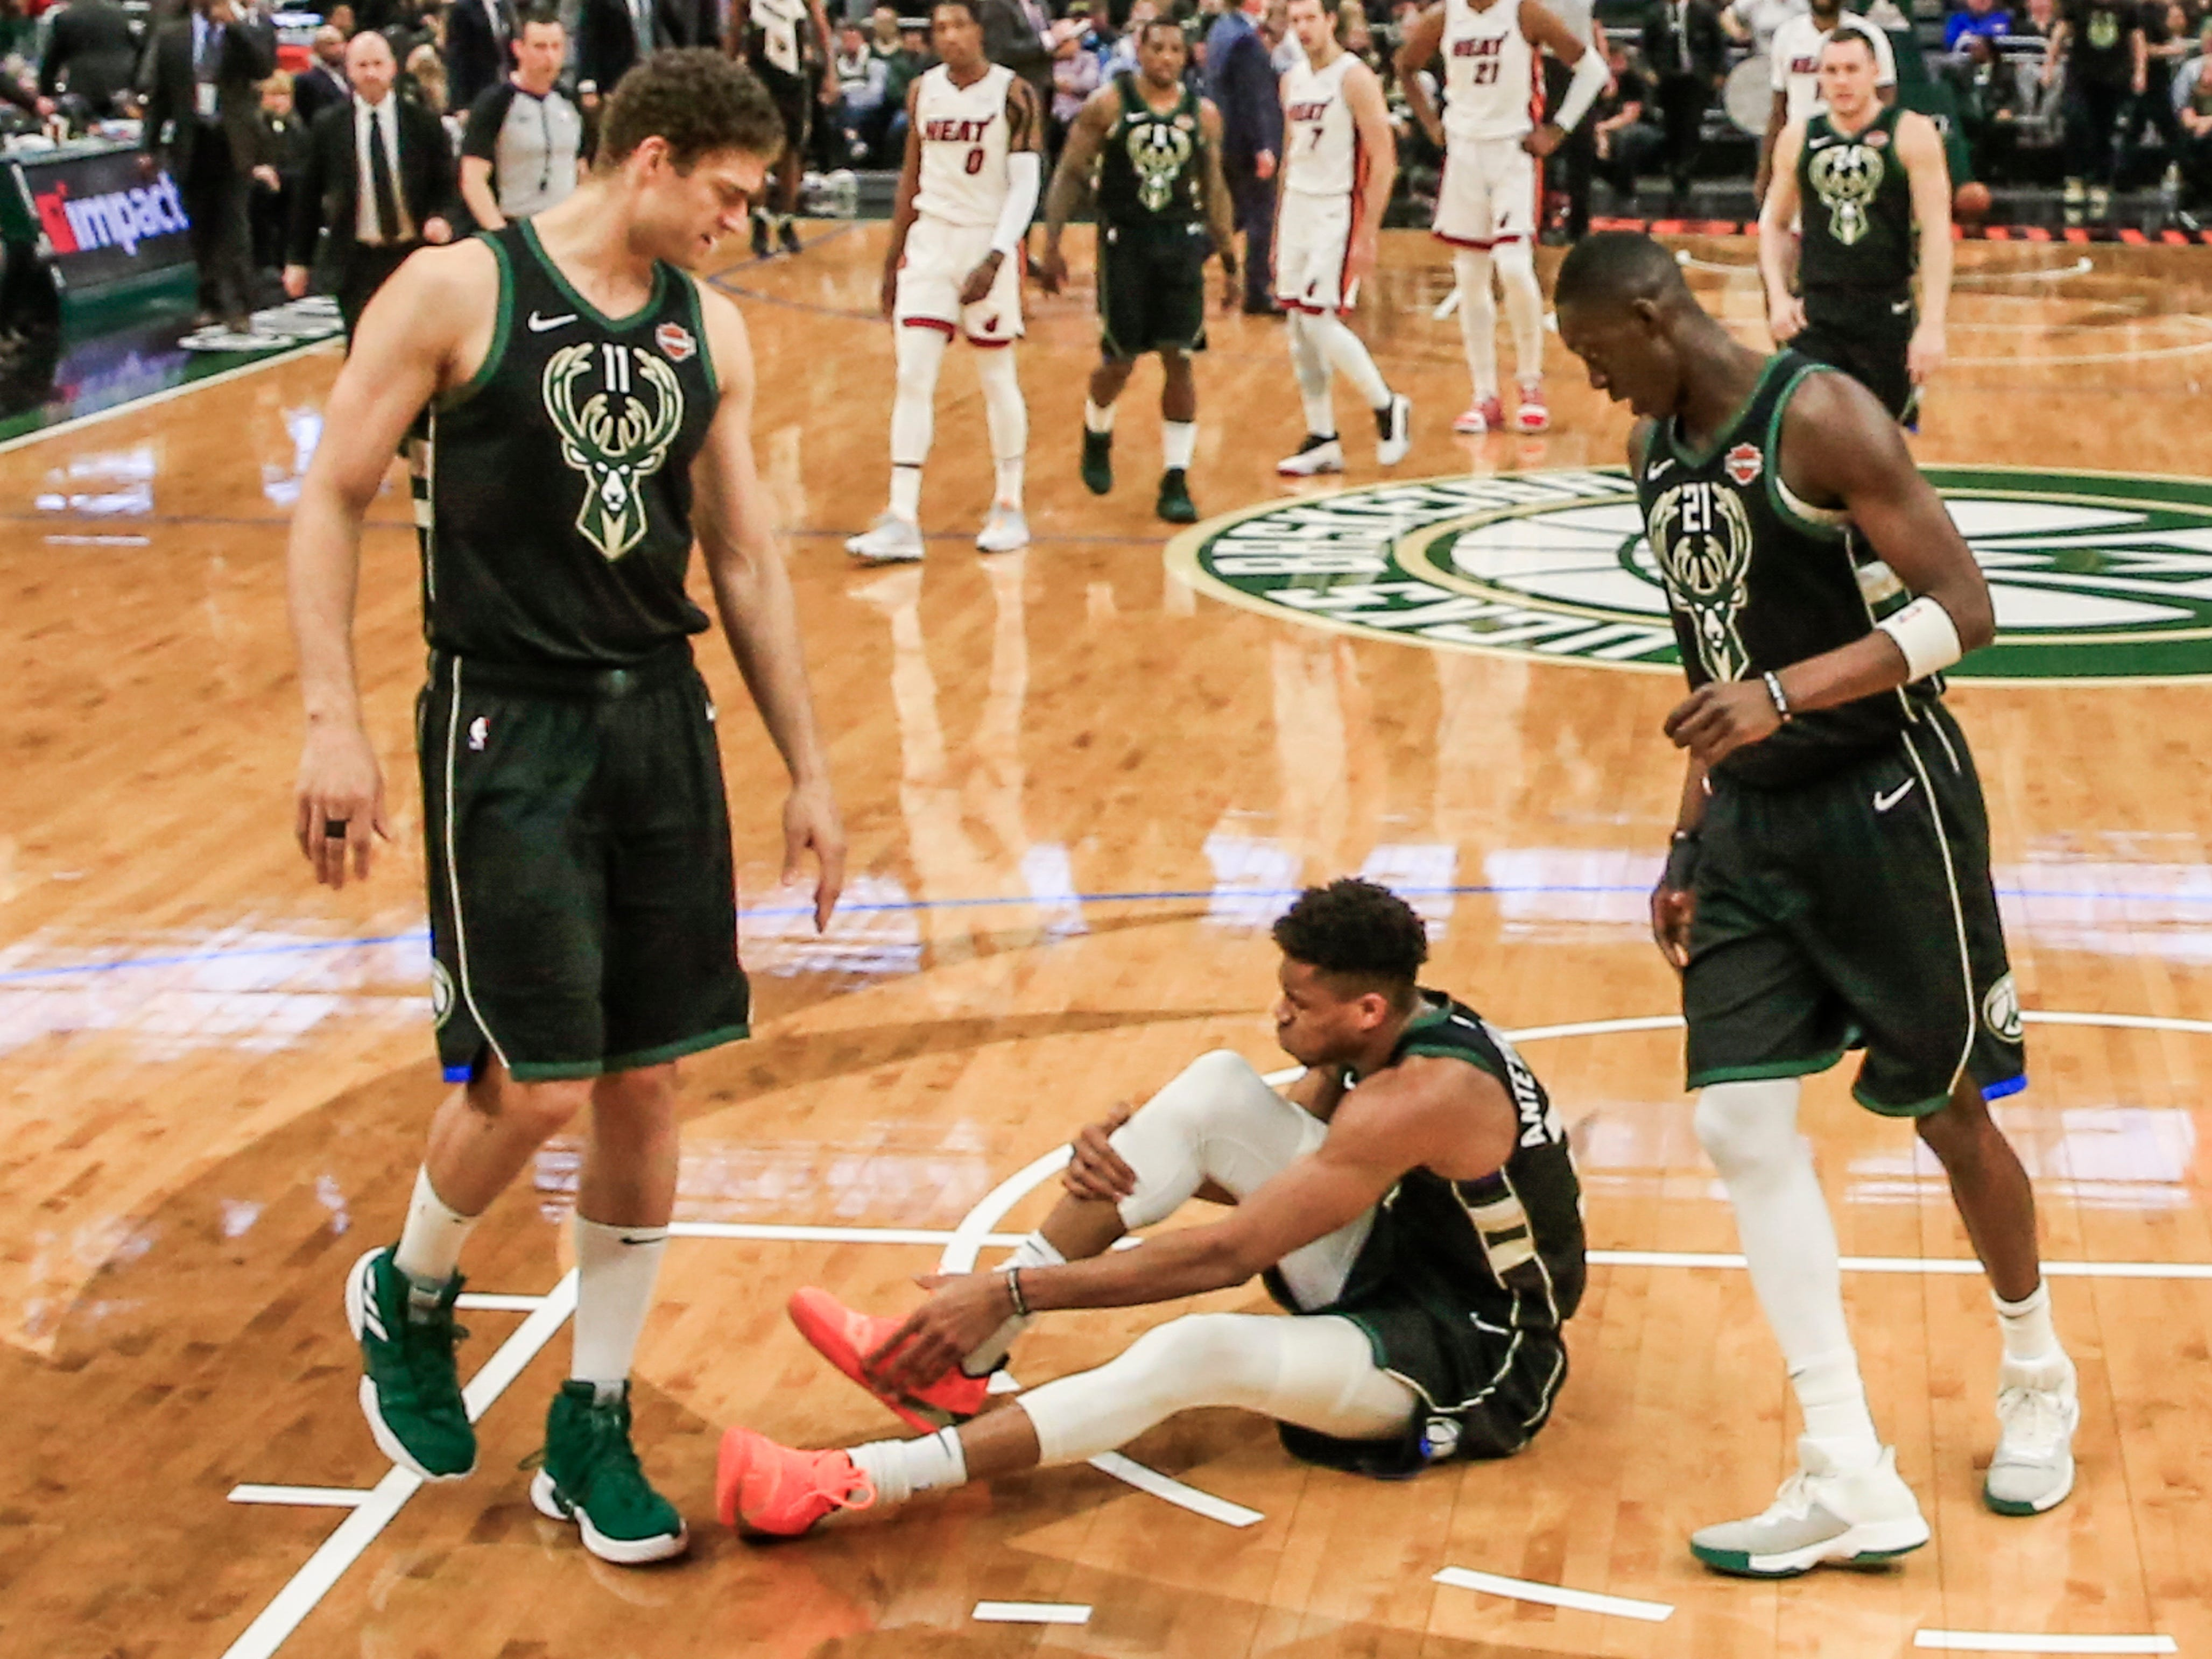 Bucks forward Giannis Antetokounmpo sits on the floor holding his leg after rolling his right ankle as teammates Brook Lopez (left) and Tony Snell come to check on him during the first half.